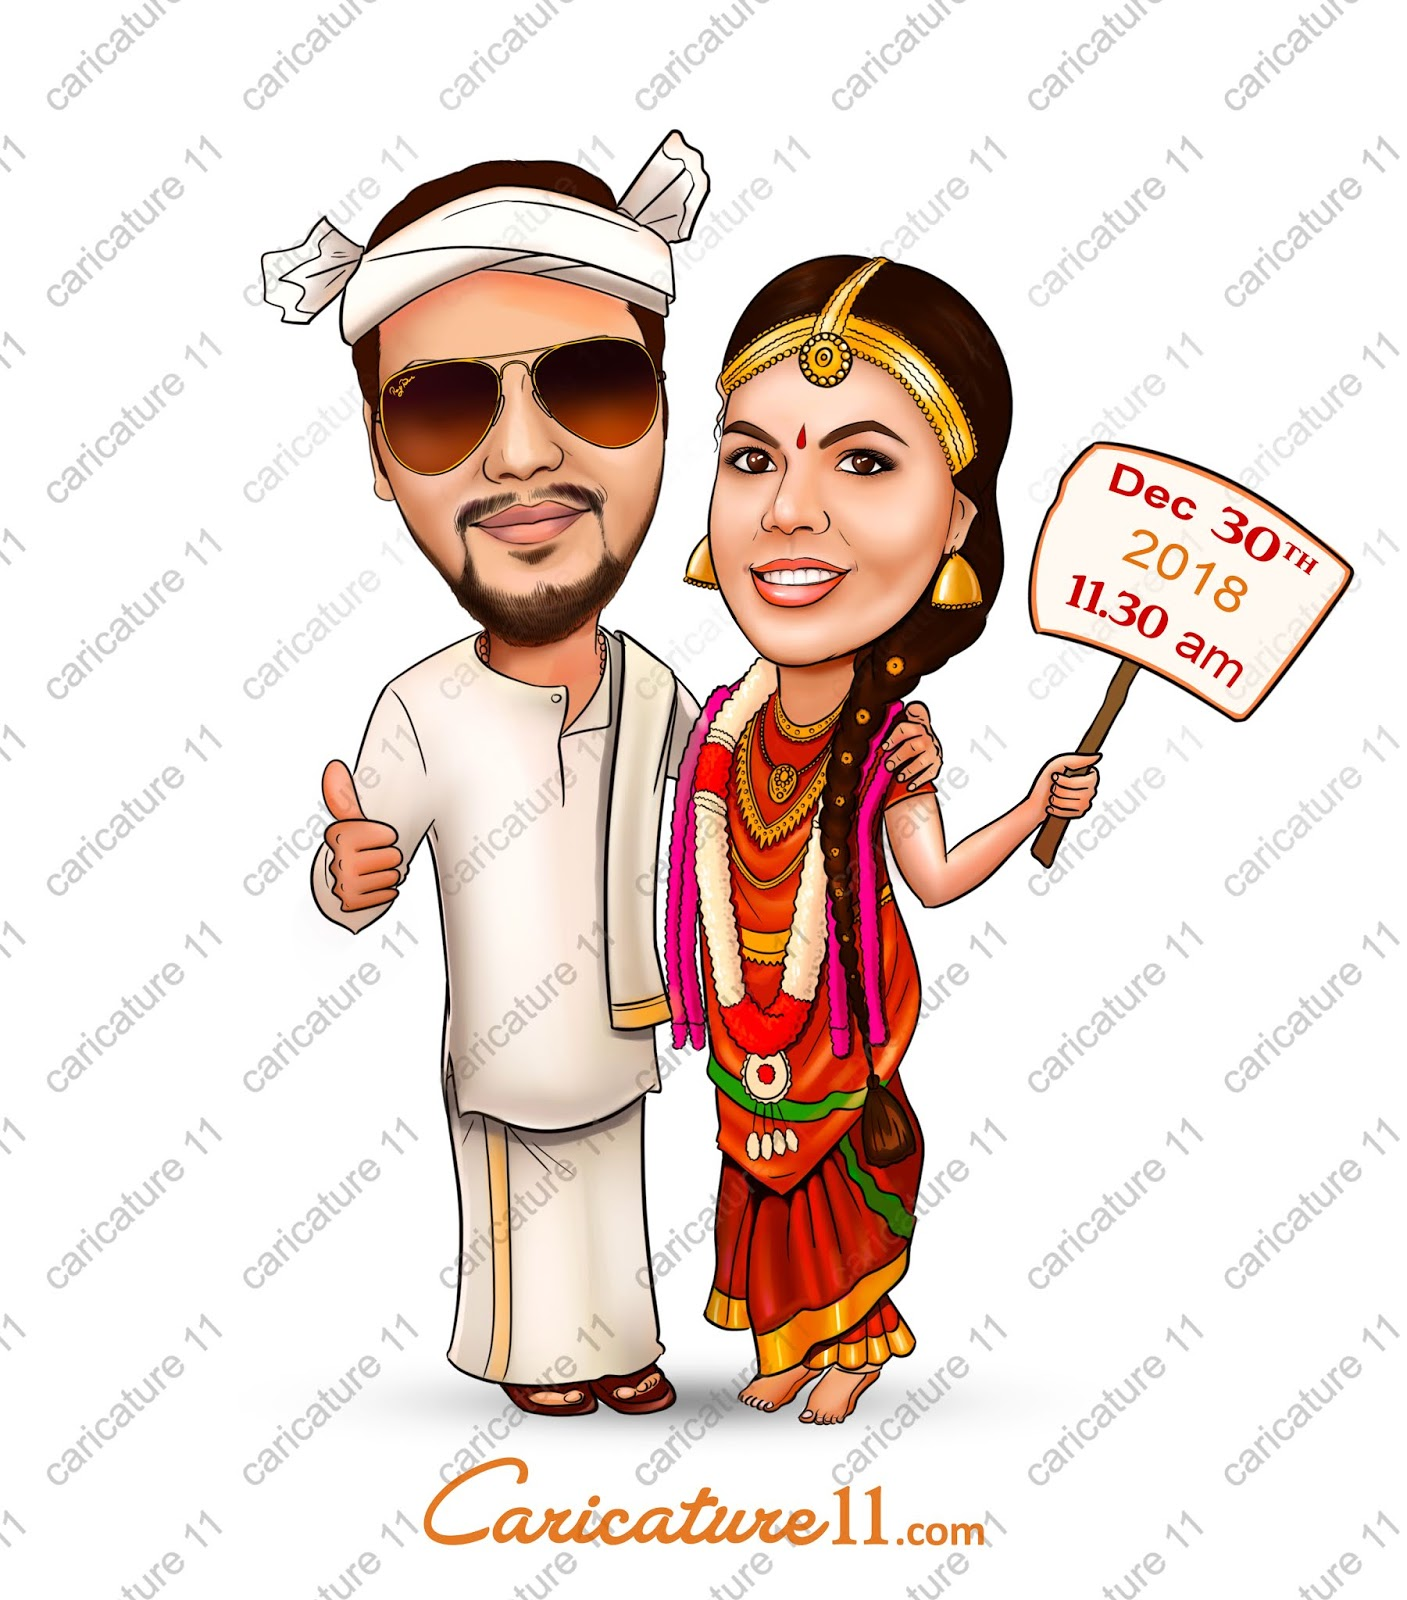 F South Indian Wedding Caricature Wedding Invitation Caricature11